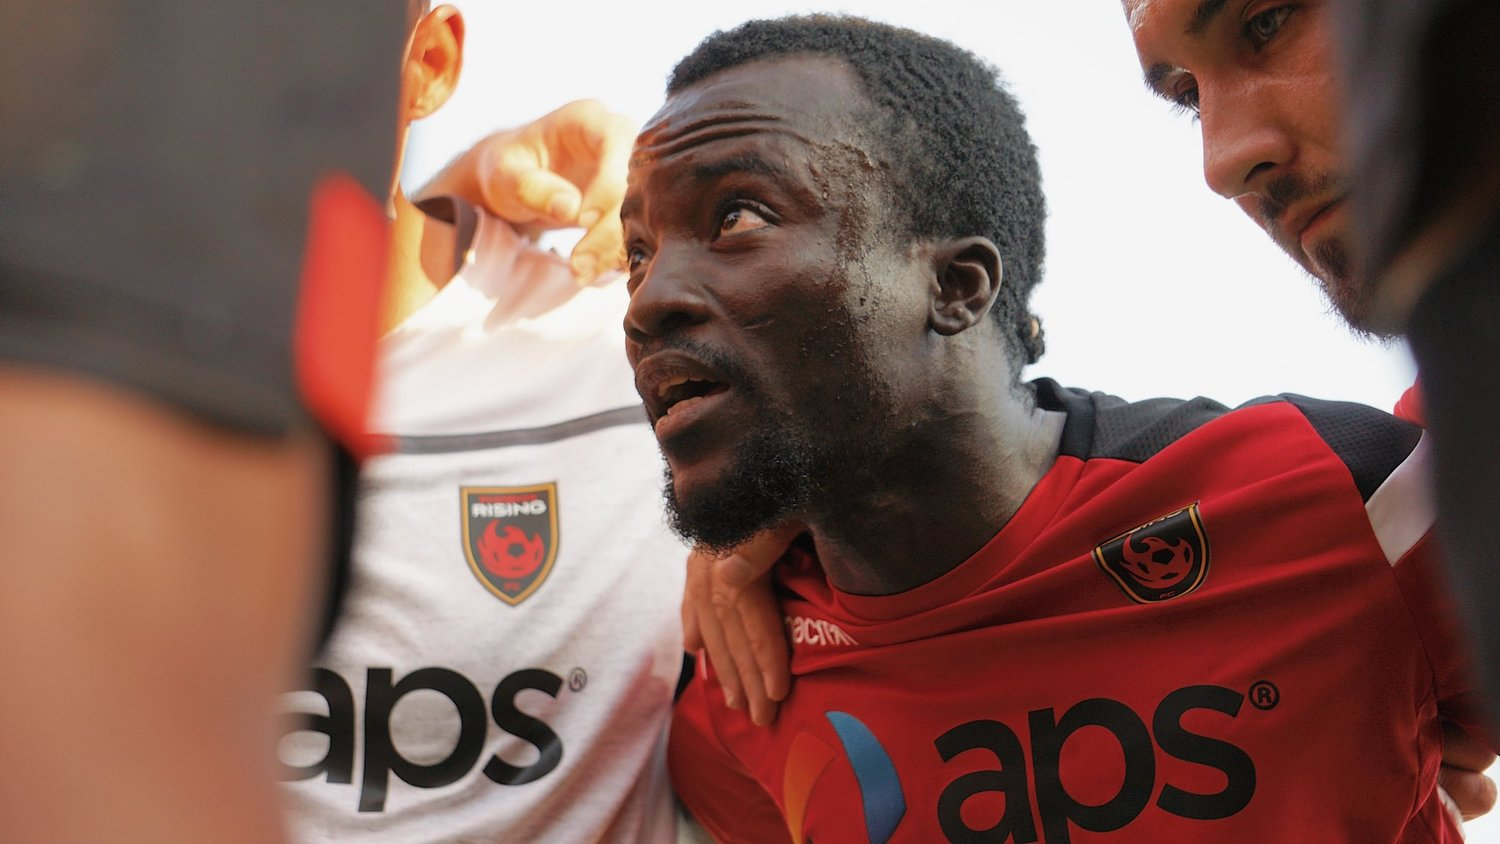 Phoenix Rising captain Solomon Asante gets his team in the right mindset for Saturday night's home match against El Paso Locomotive FC.